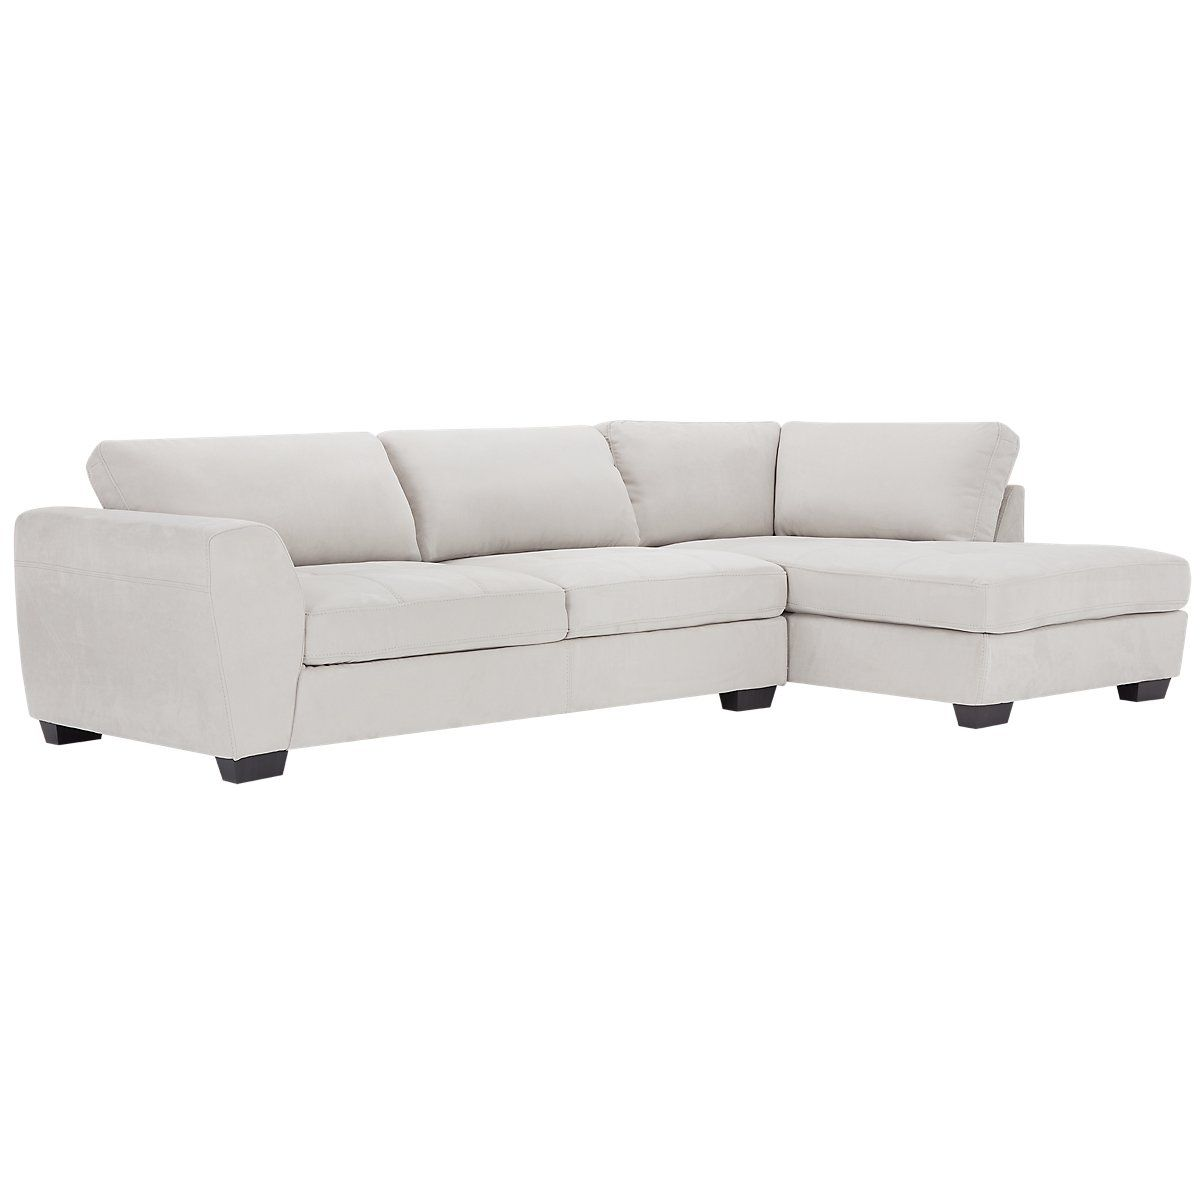 Fantastic Perry Light Gray Microfiber Right Chaise Sectional Keys Pabps2019 Chair Design Images Pabps2019Com